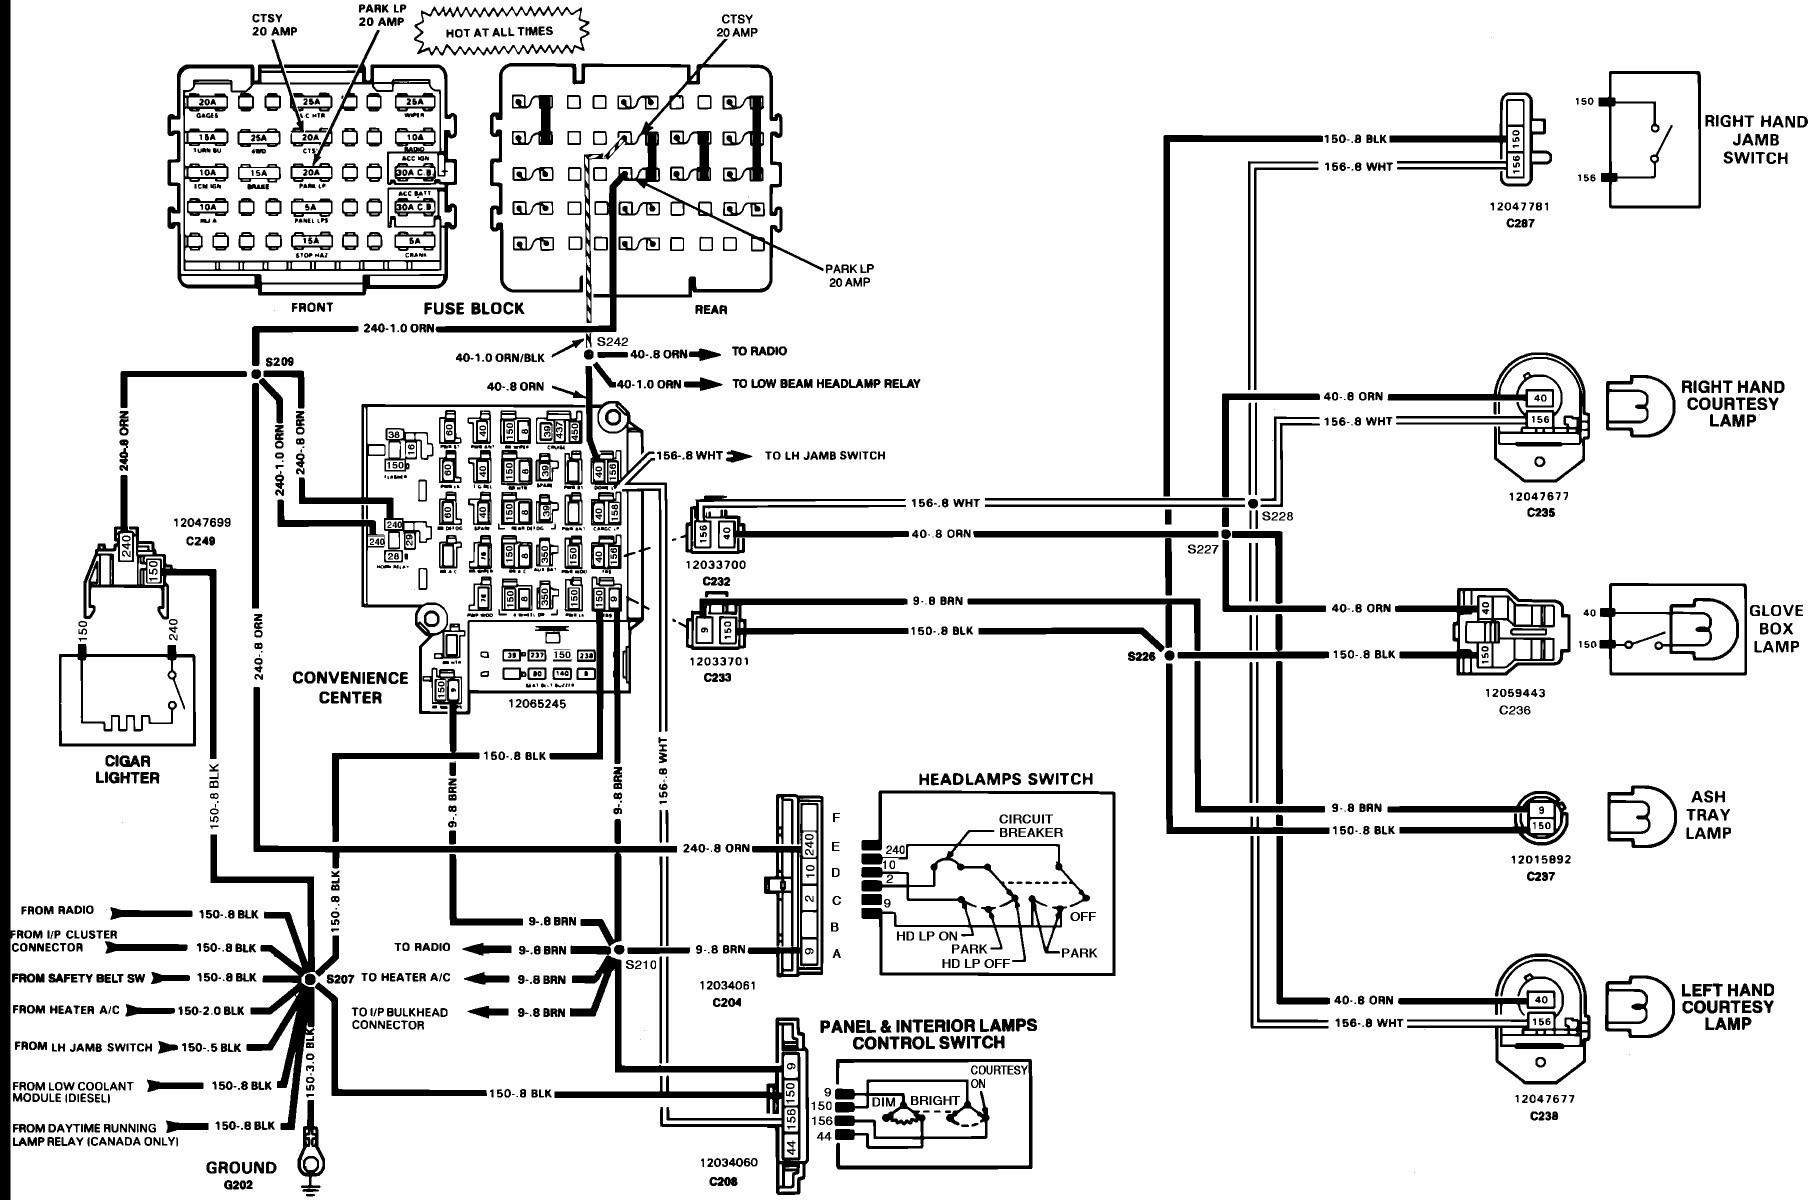 2002 royal enfield wiring diagram wiring diagram Royal Enfield Transmission Diagram 2002 royal enfield wiring diagram wiring diagram1956 indian royal enfield wiring diagram wiring library88 98 chevy